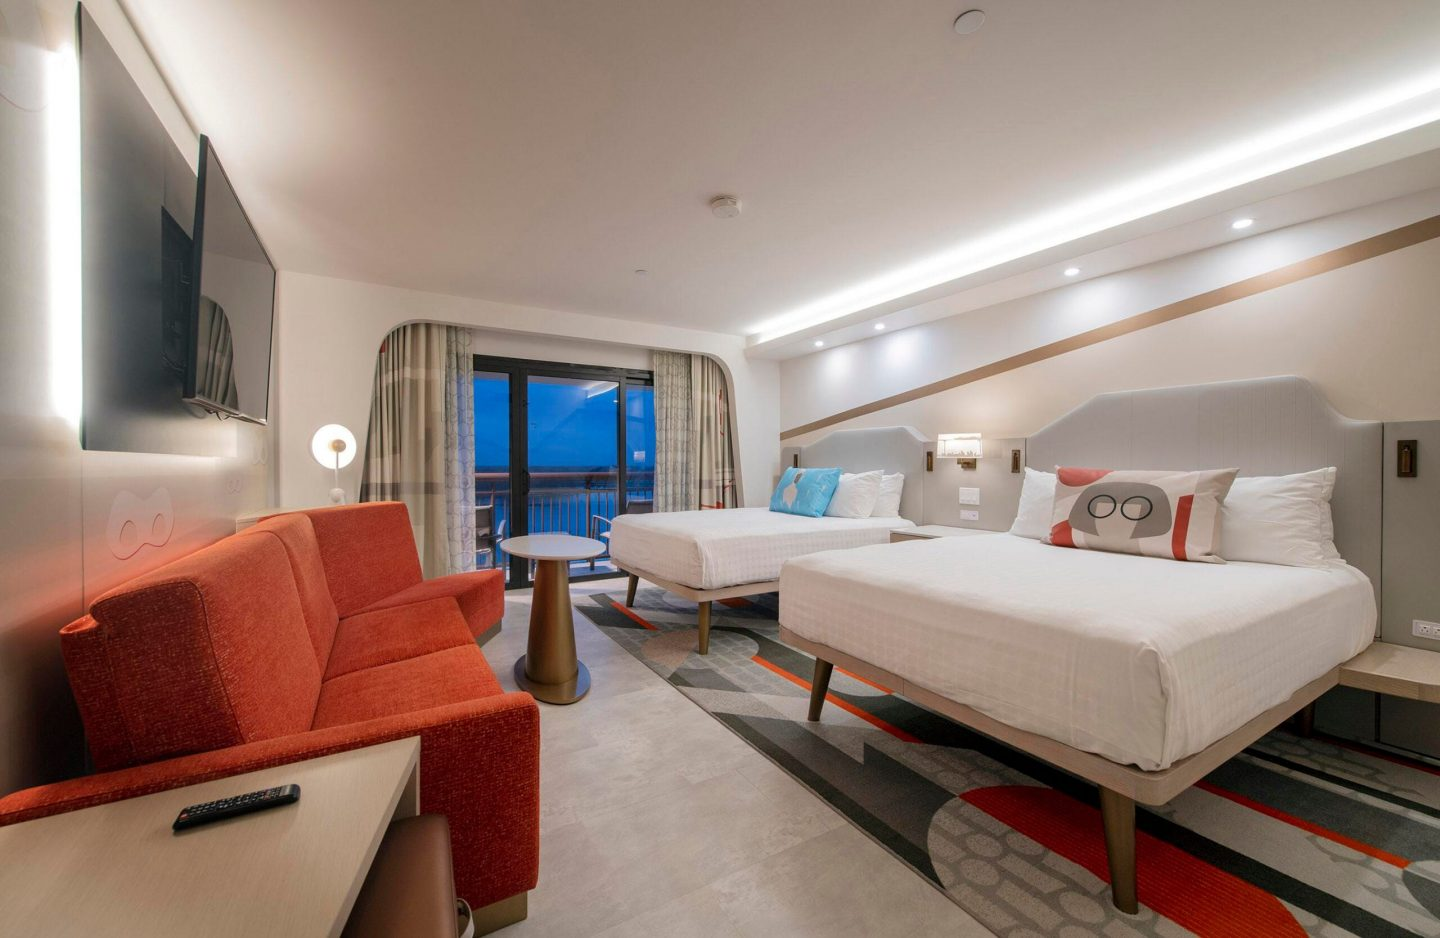 The Incredibles Rooms at Disney's Contemporary Resort